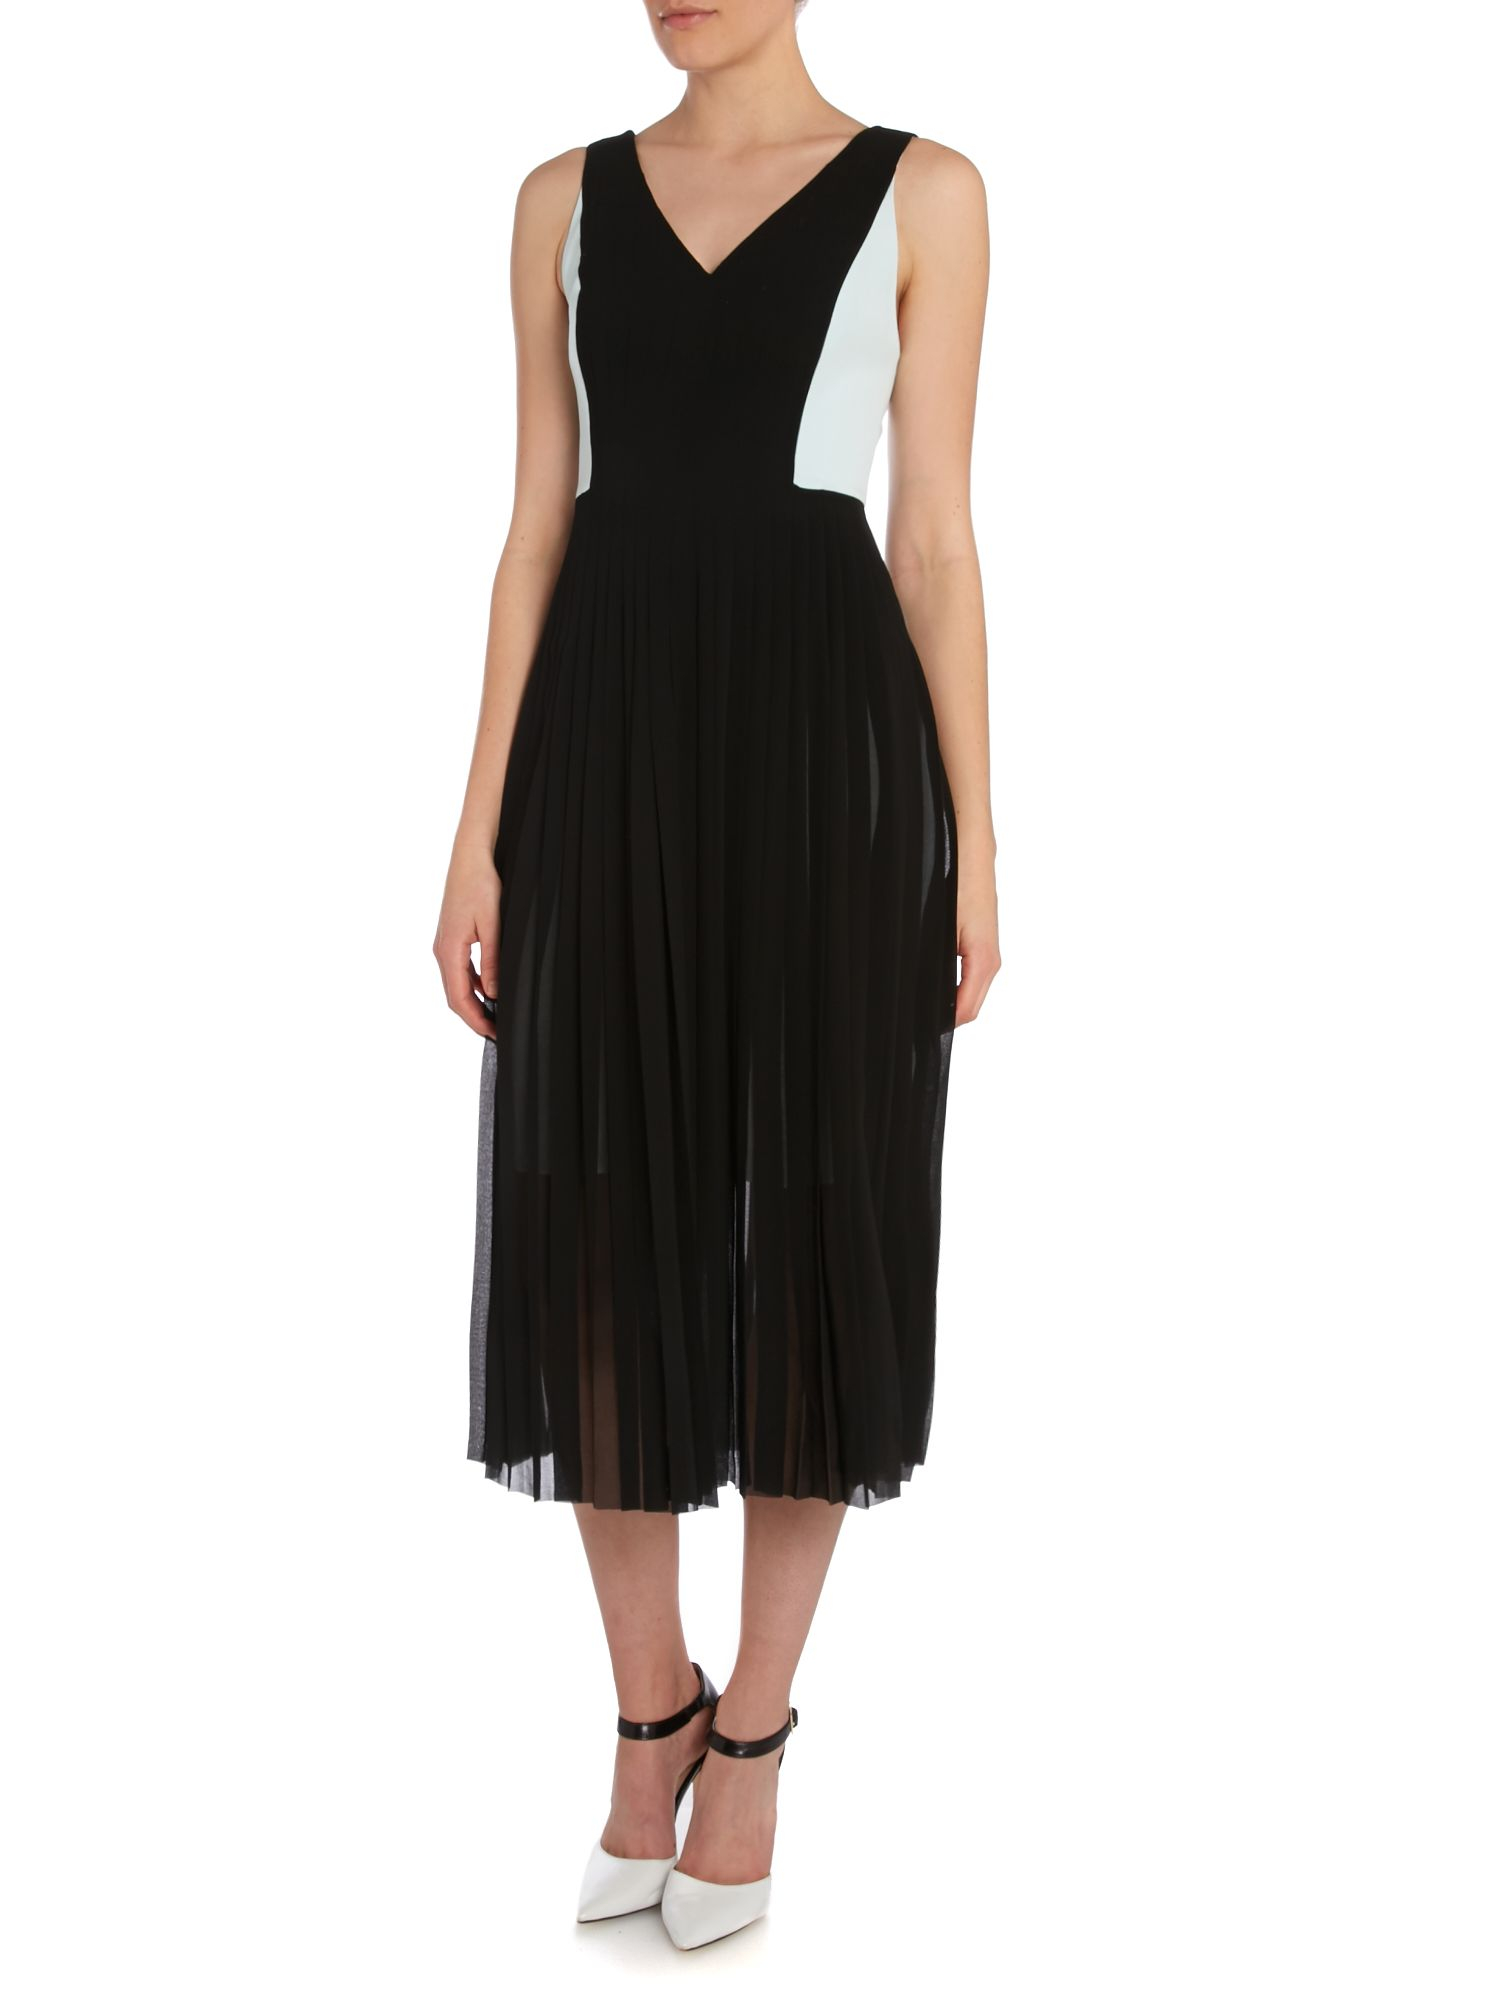 paul smith black label sleeveless dress with pleated skirt